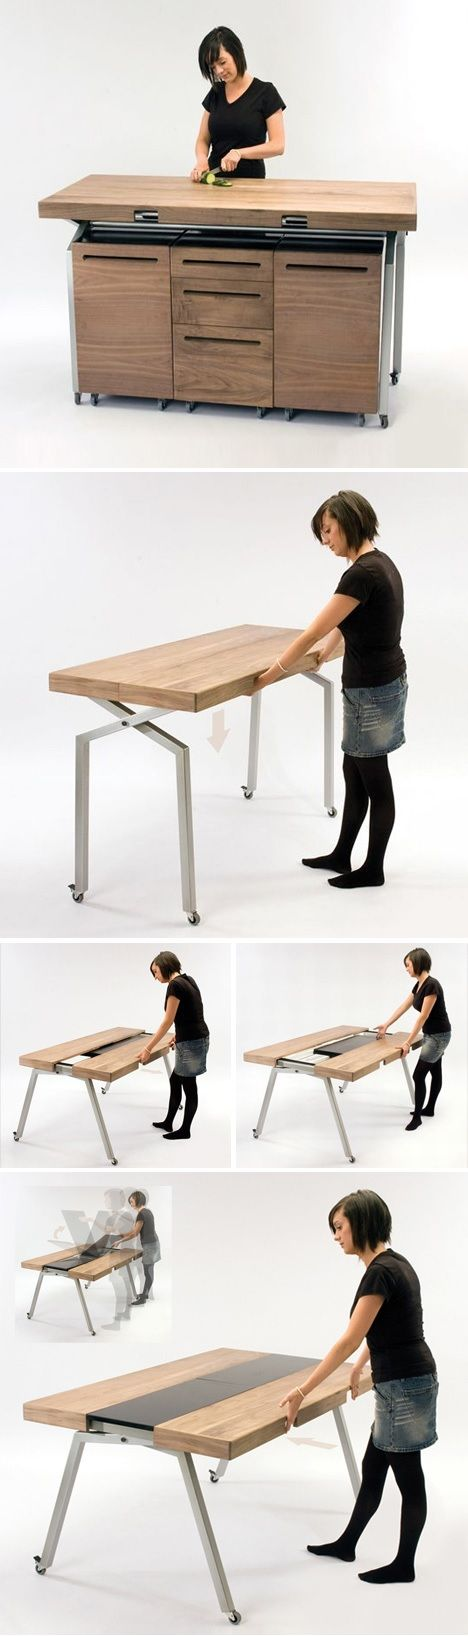 Comptoir de travail qui se transforme en table diner for Meuble qui se transforme